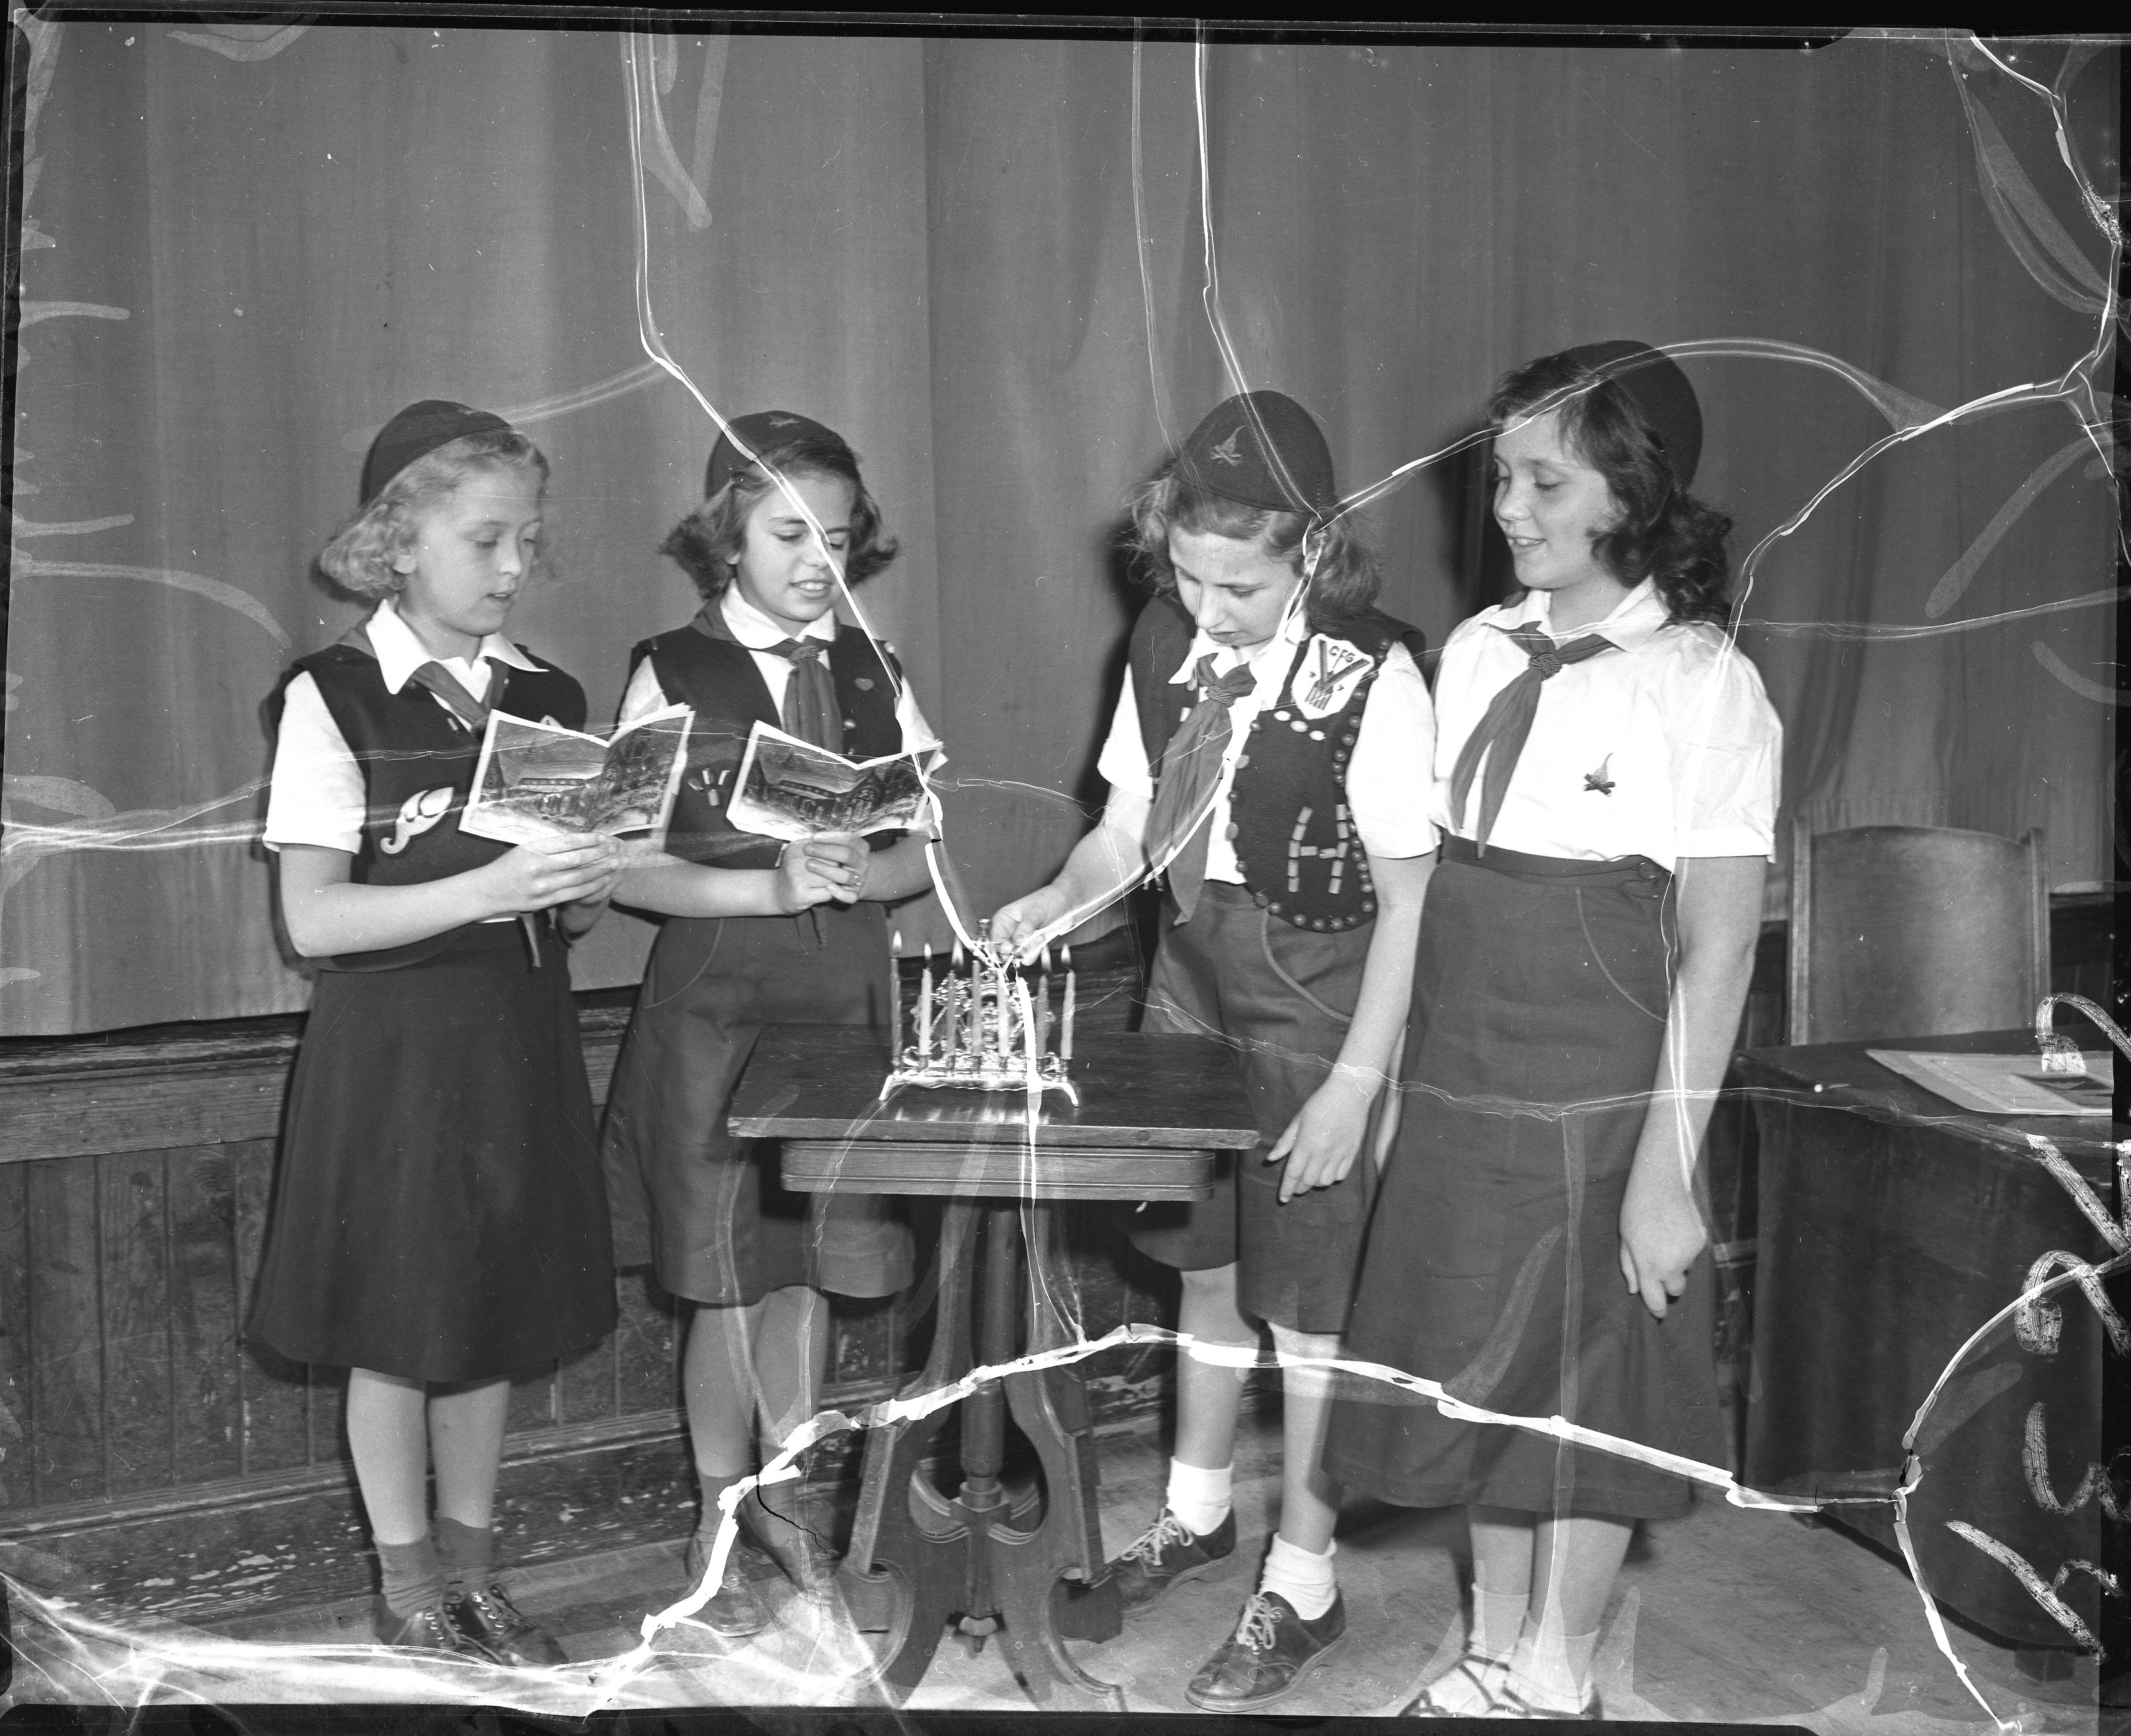 Girls light a menorah, 1951. From the Portland Public Library archival collection of Portland Press Herald, Maine Sunday Telegram and Evening Express photos.